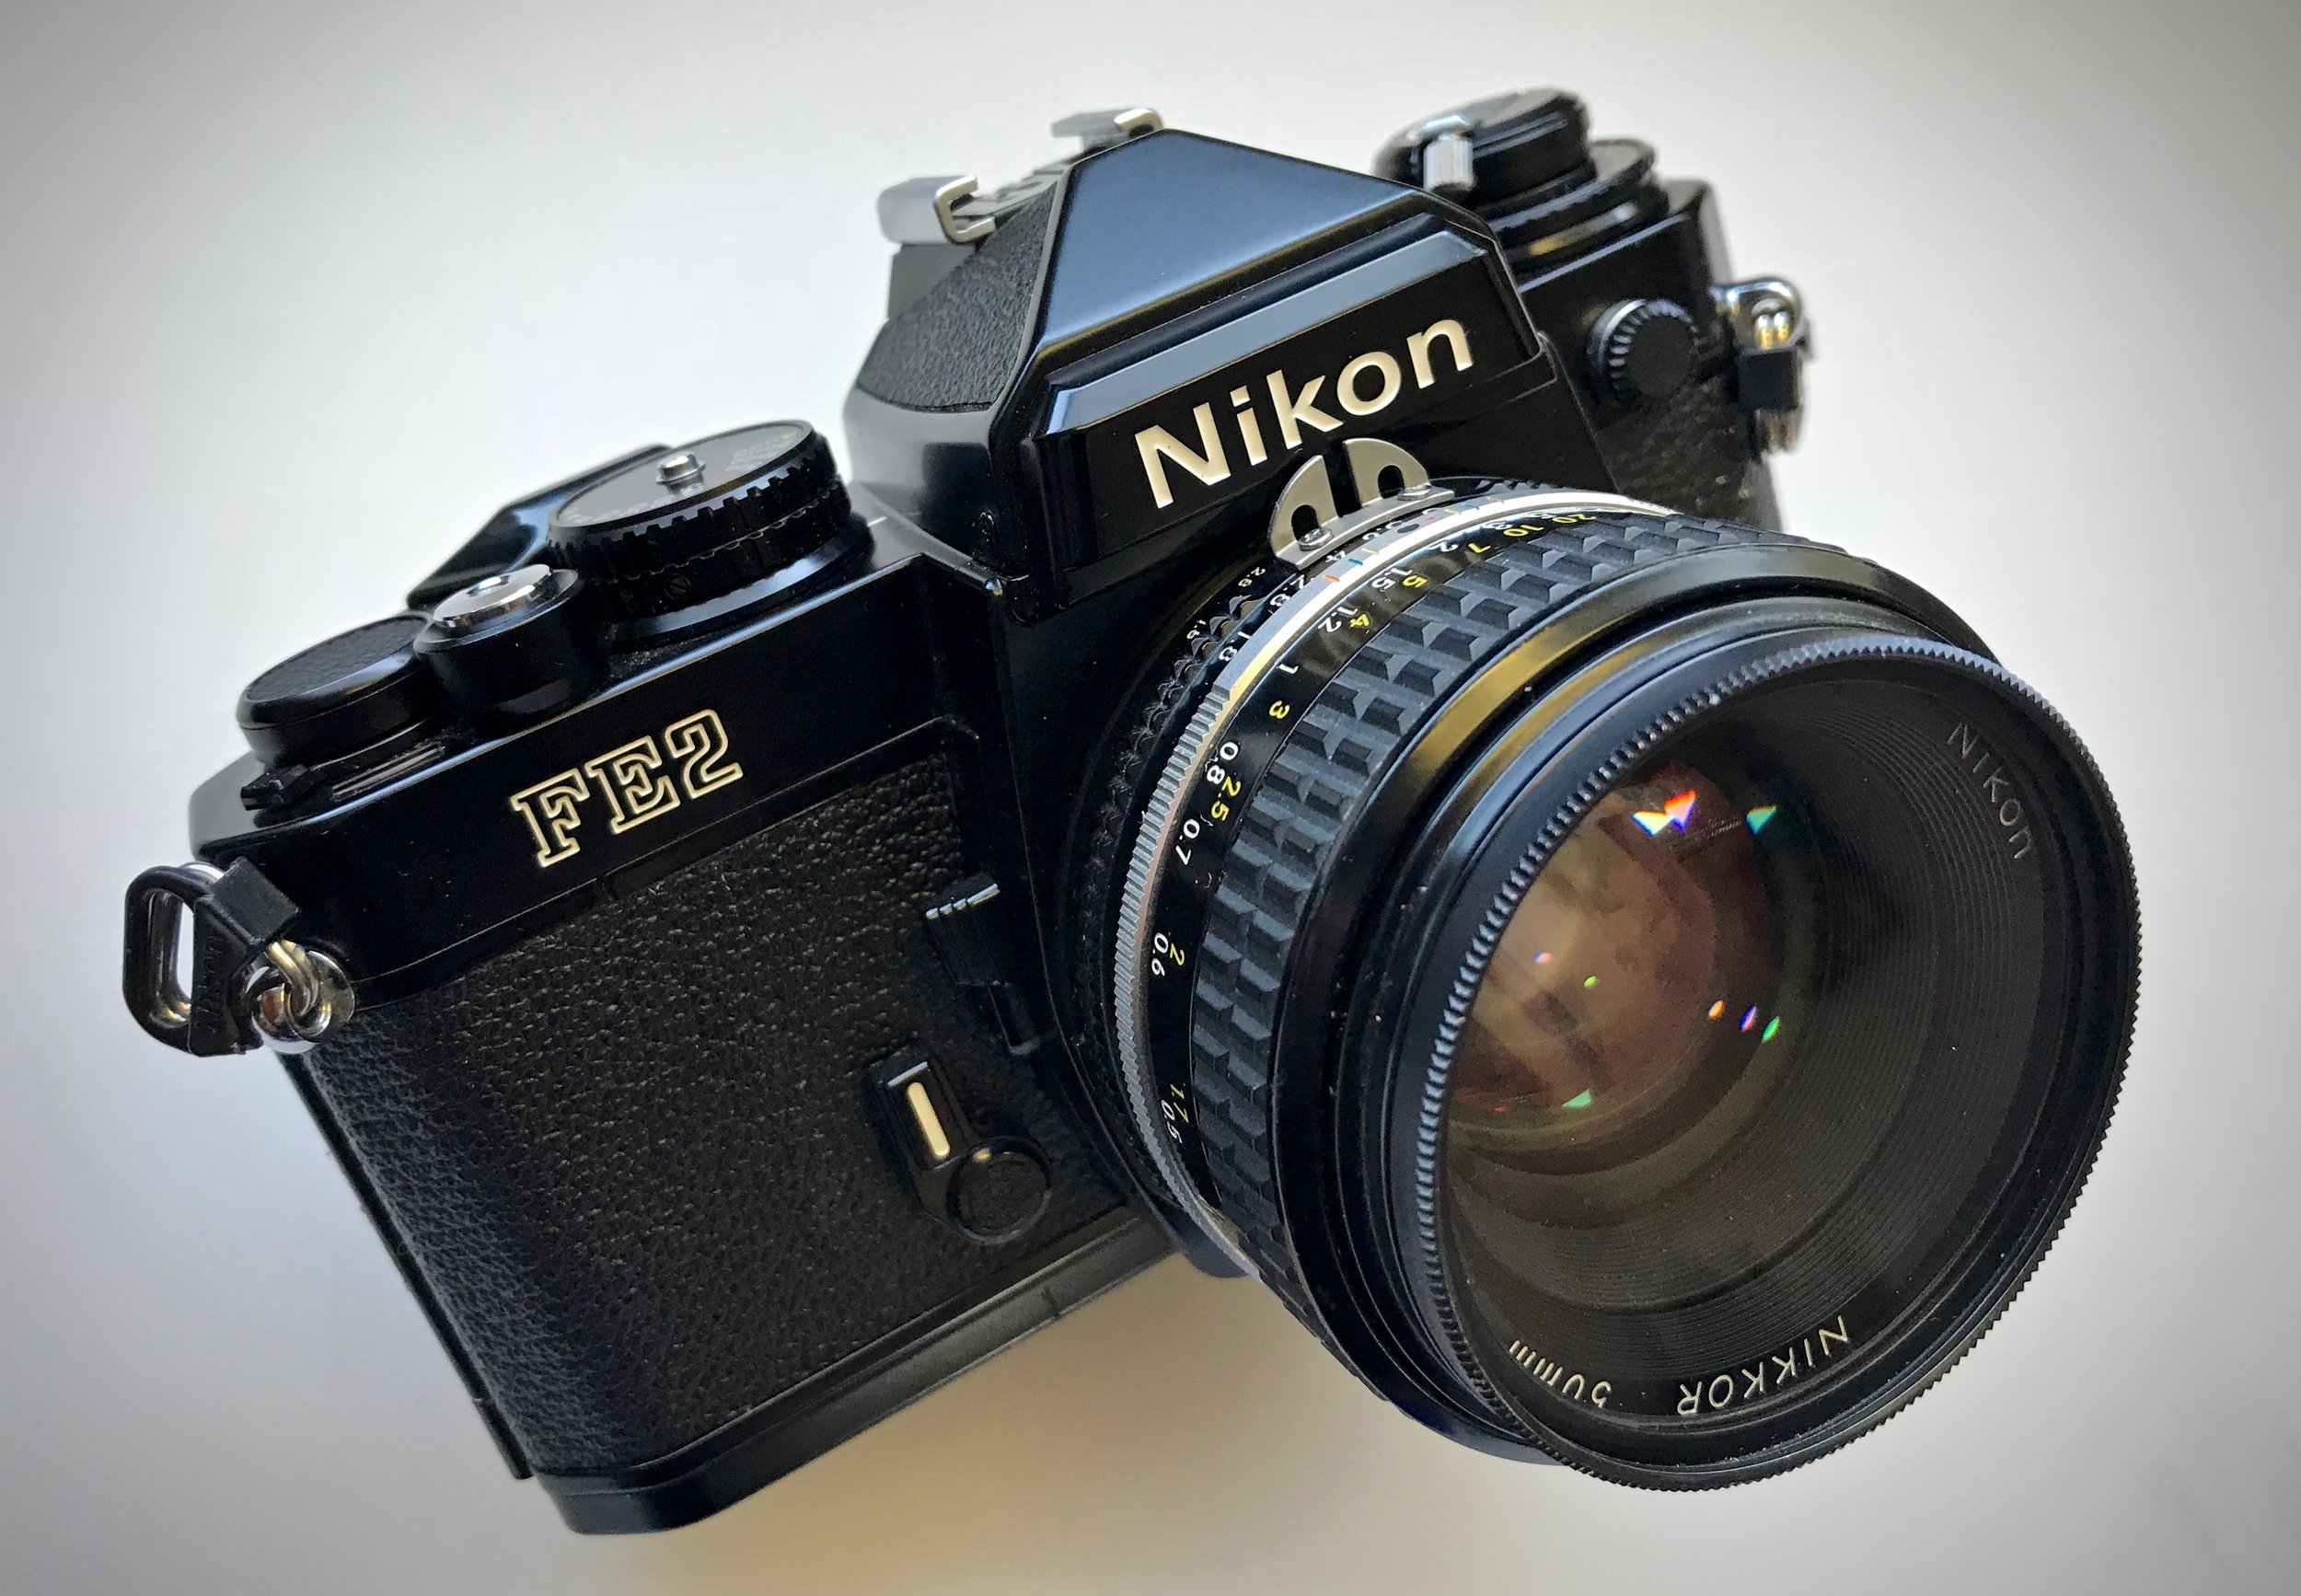 My second Nikon FE2, freshly CLAd